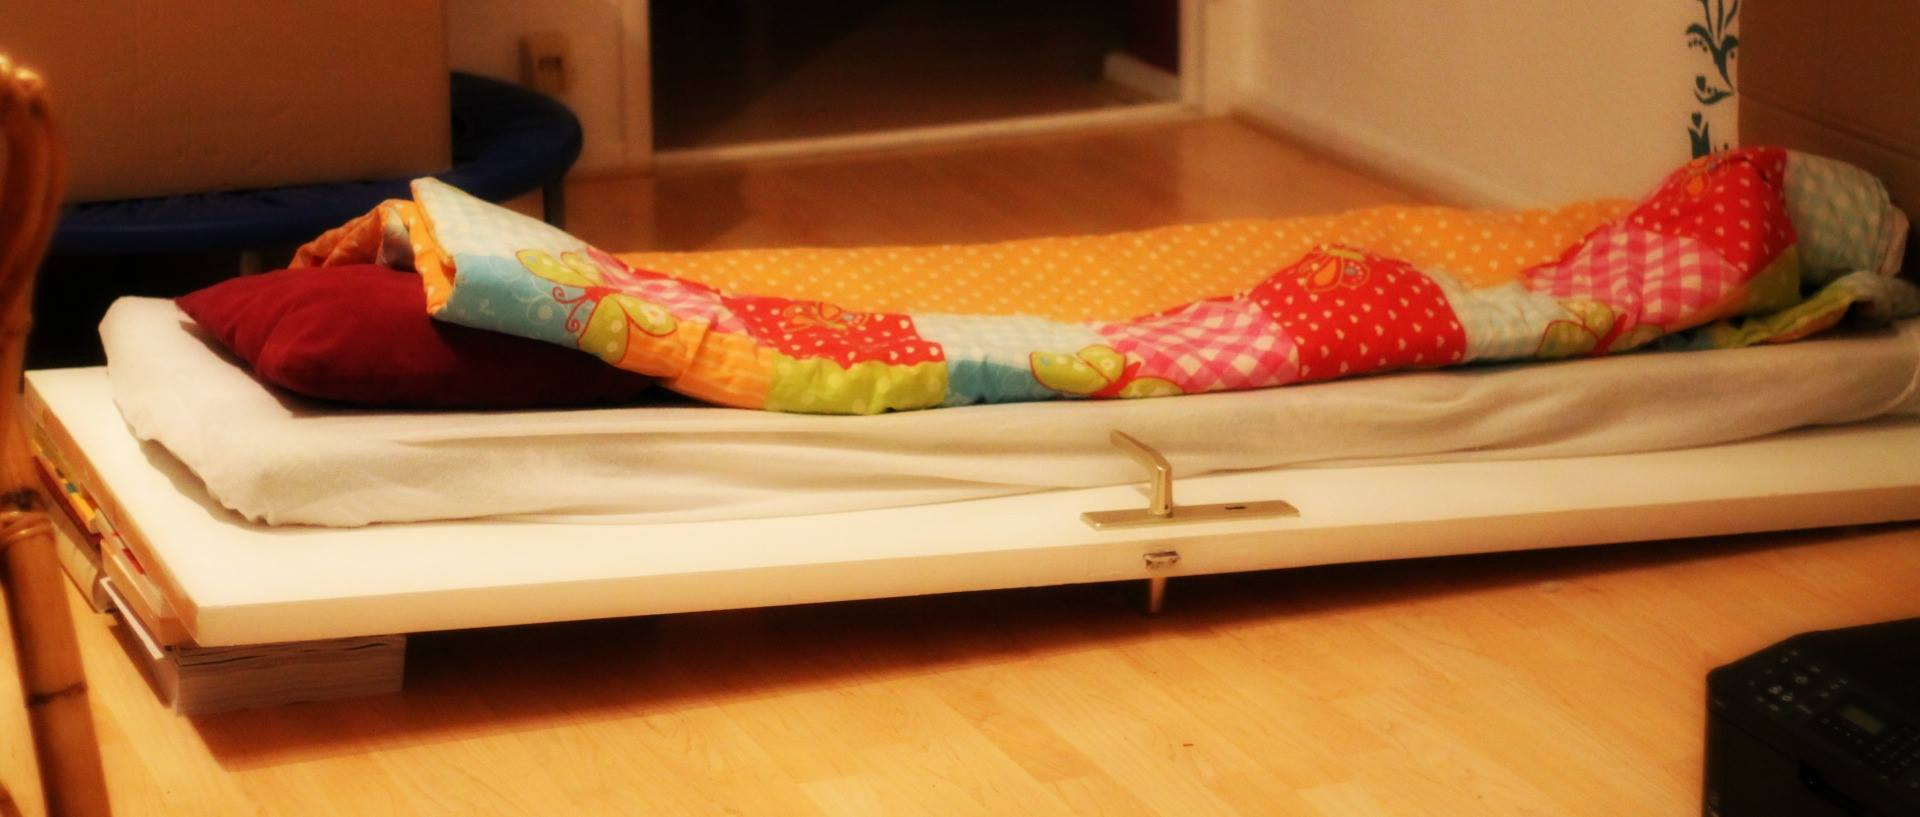 Inclined_bed_using_door_plus_books_ibt_2.jpg - 107.96 kB